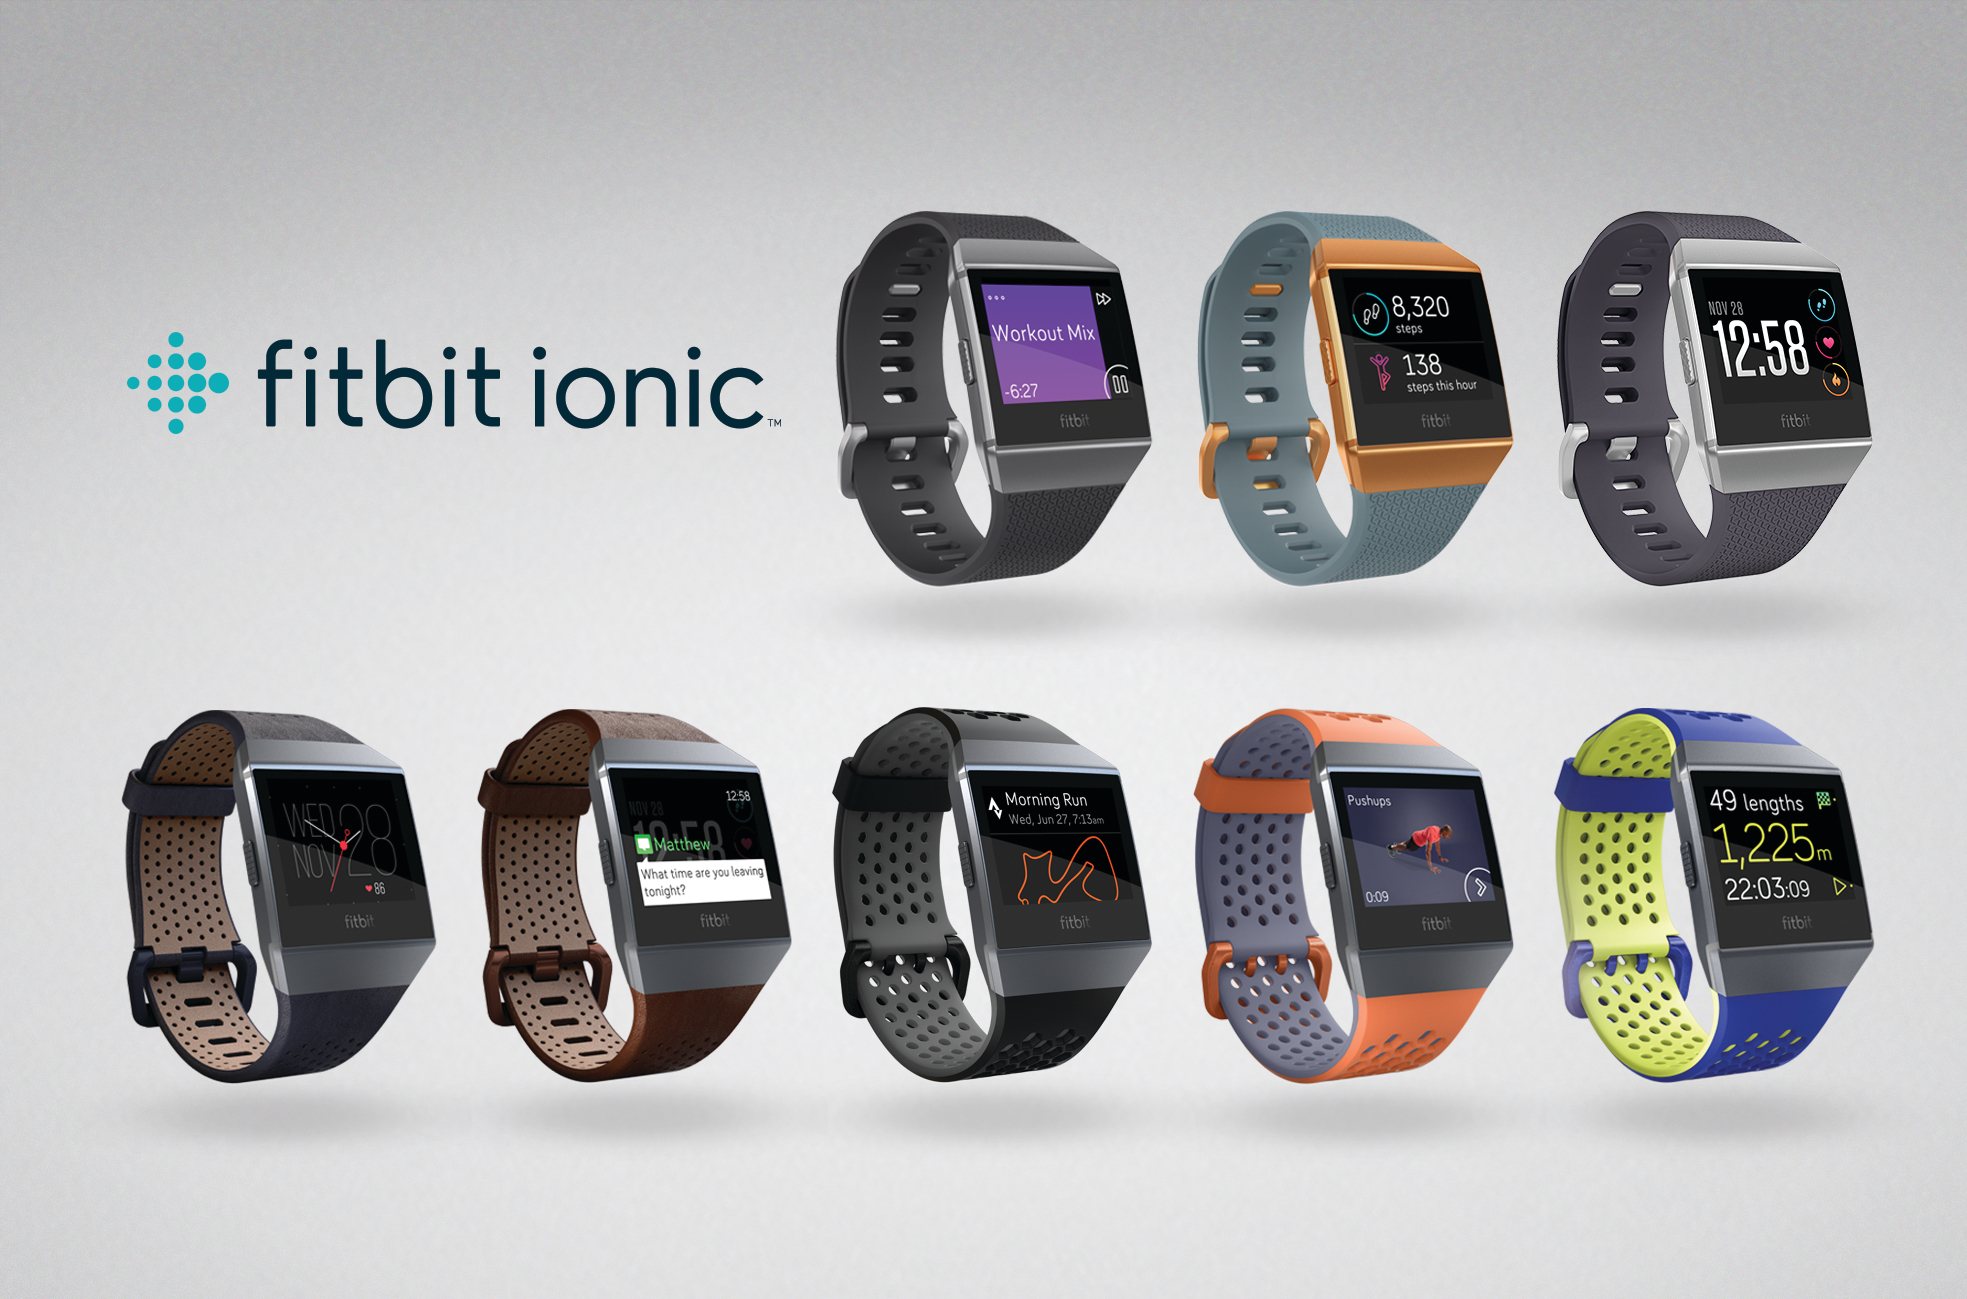 Fitbit_Ionic_Family_LIneup.jpg